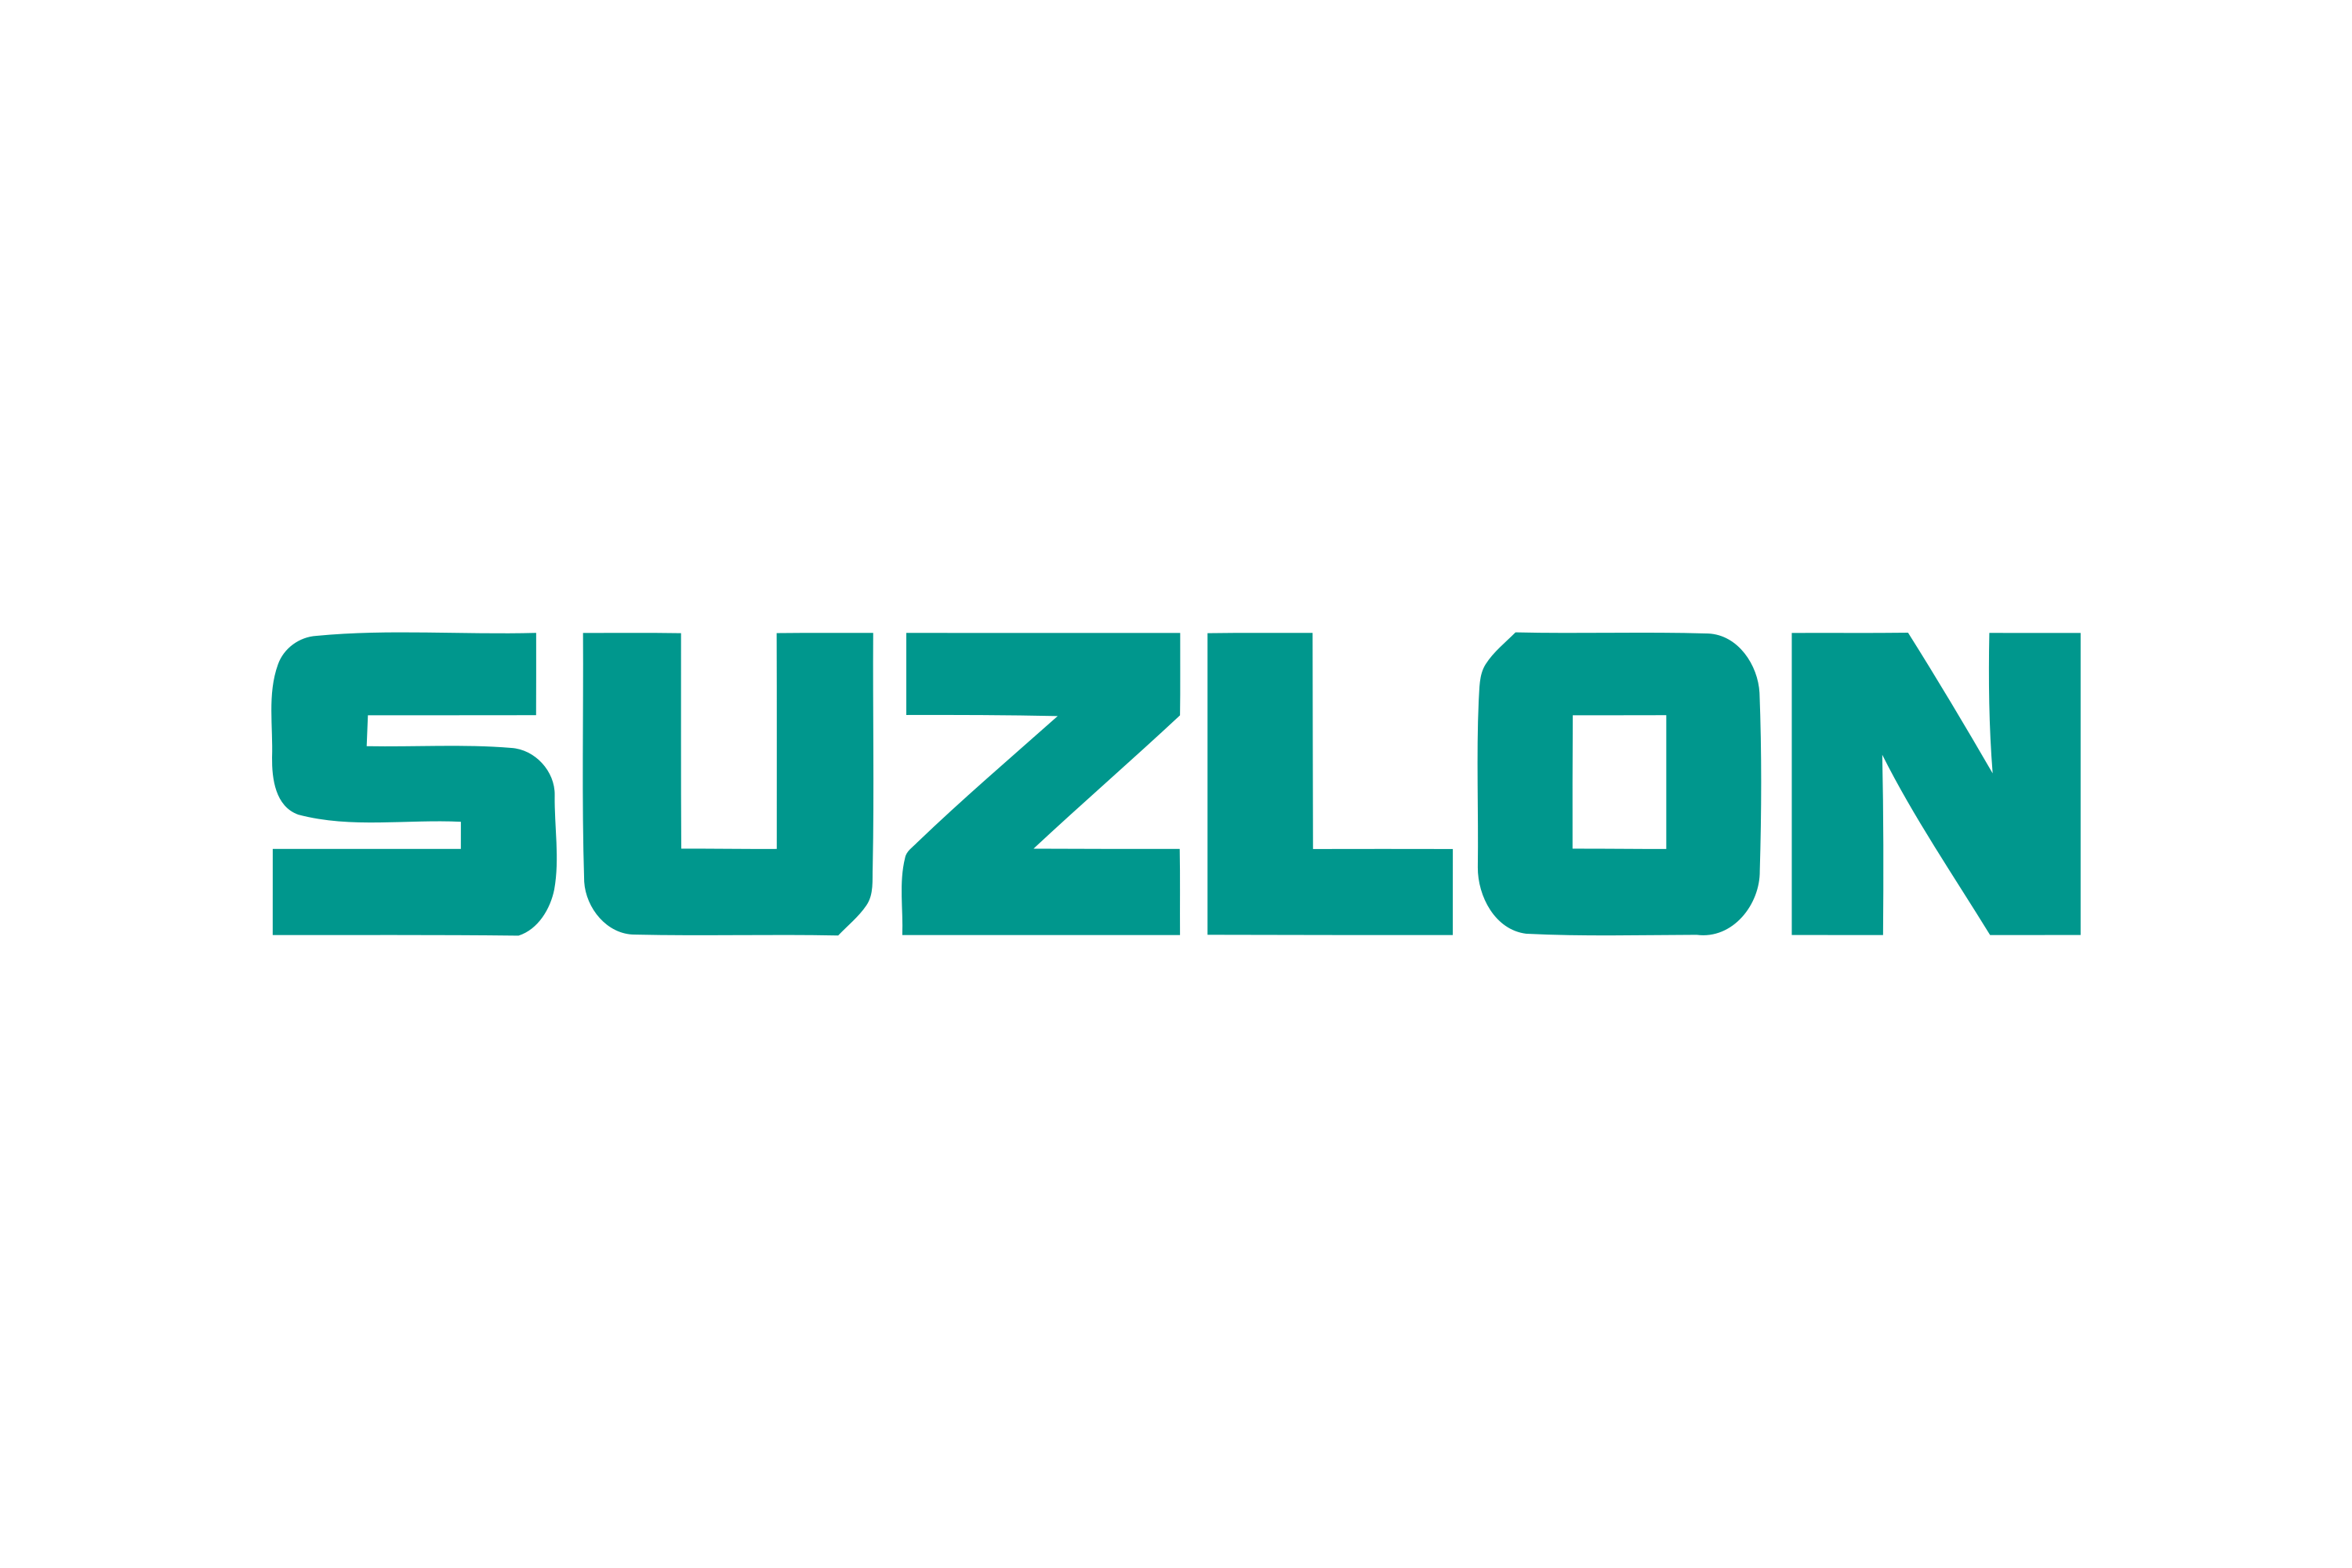 Suzlon: Indian wind turbine manufacturer